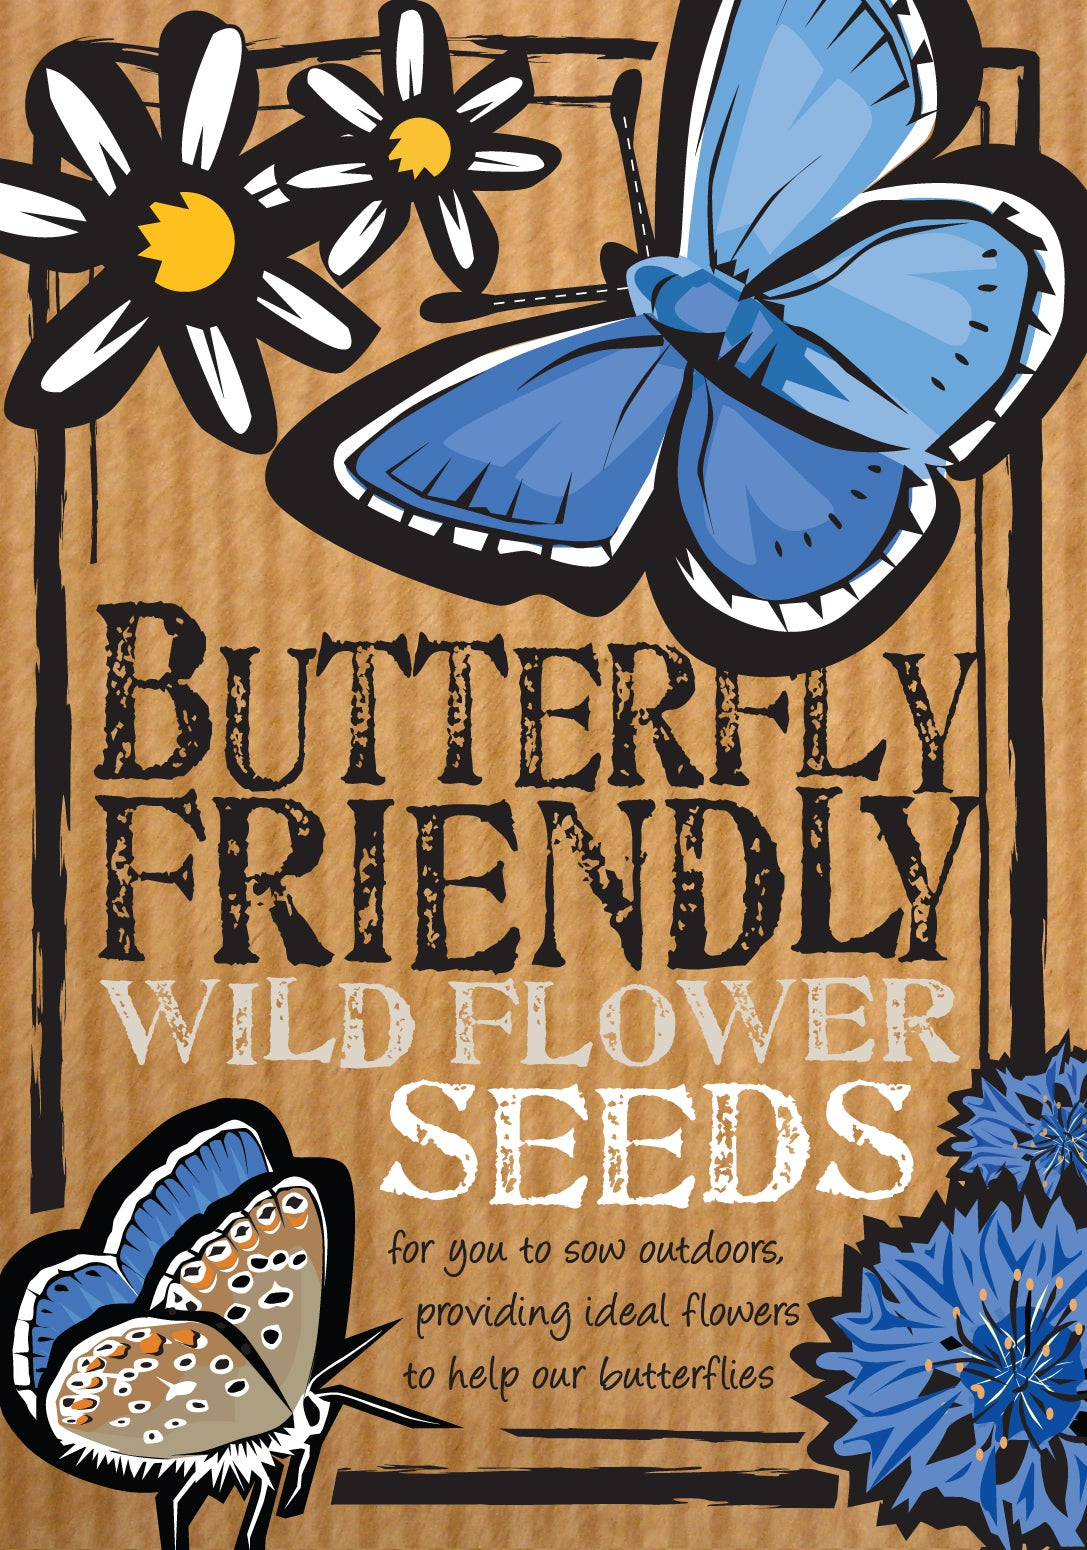 Image of Butterfly-Friendly Wild Flower Seeds (£3.00 including VAT)